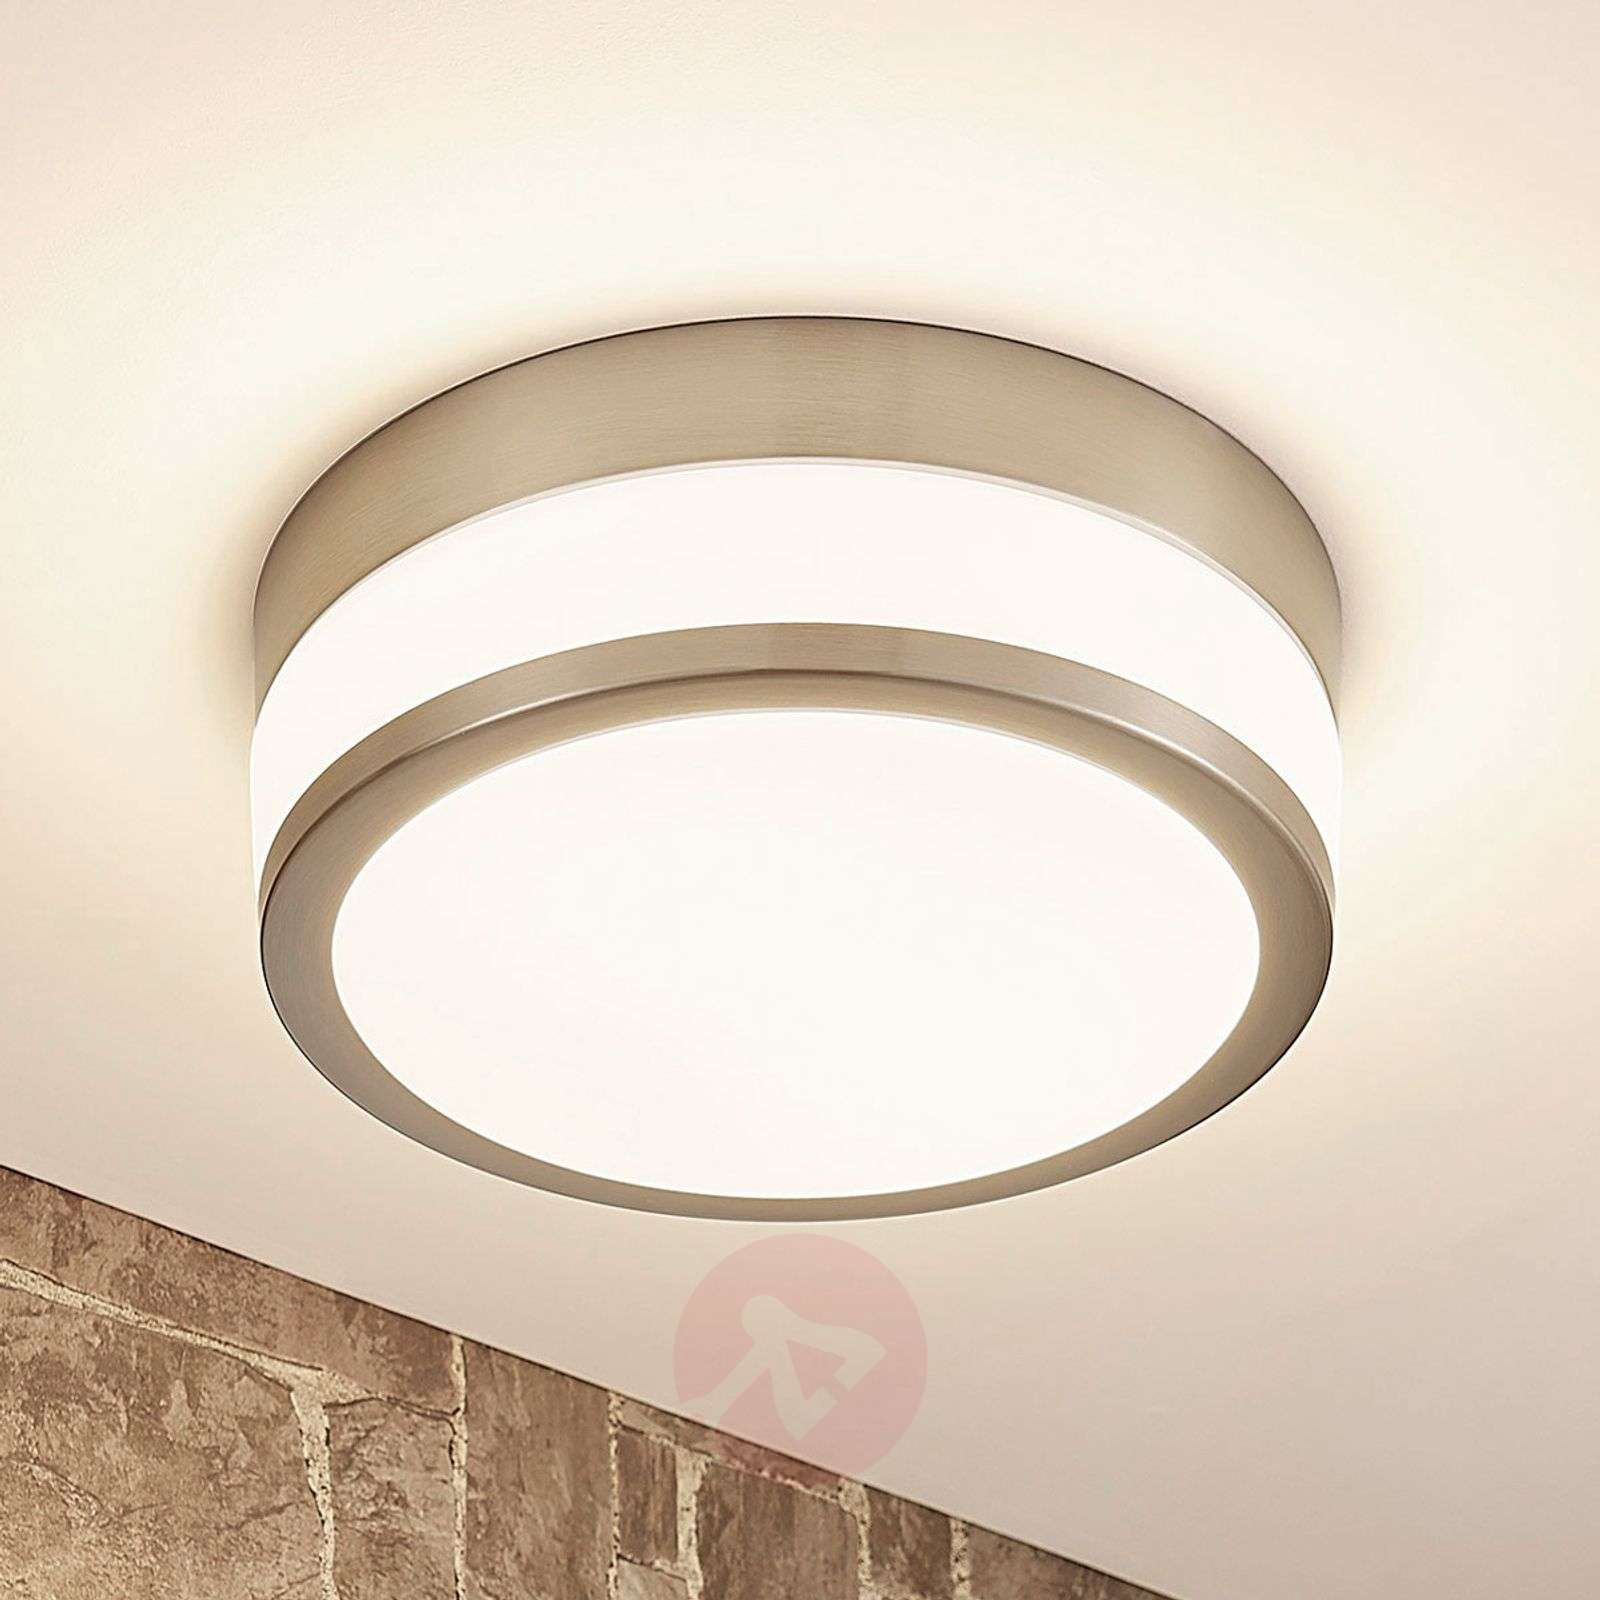 Acquista plafoniera led per ambienti umidi luanna lampade.it